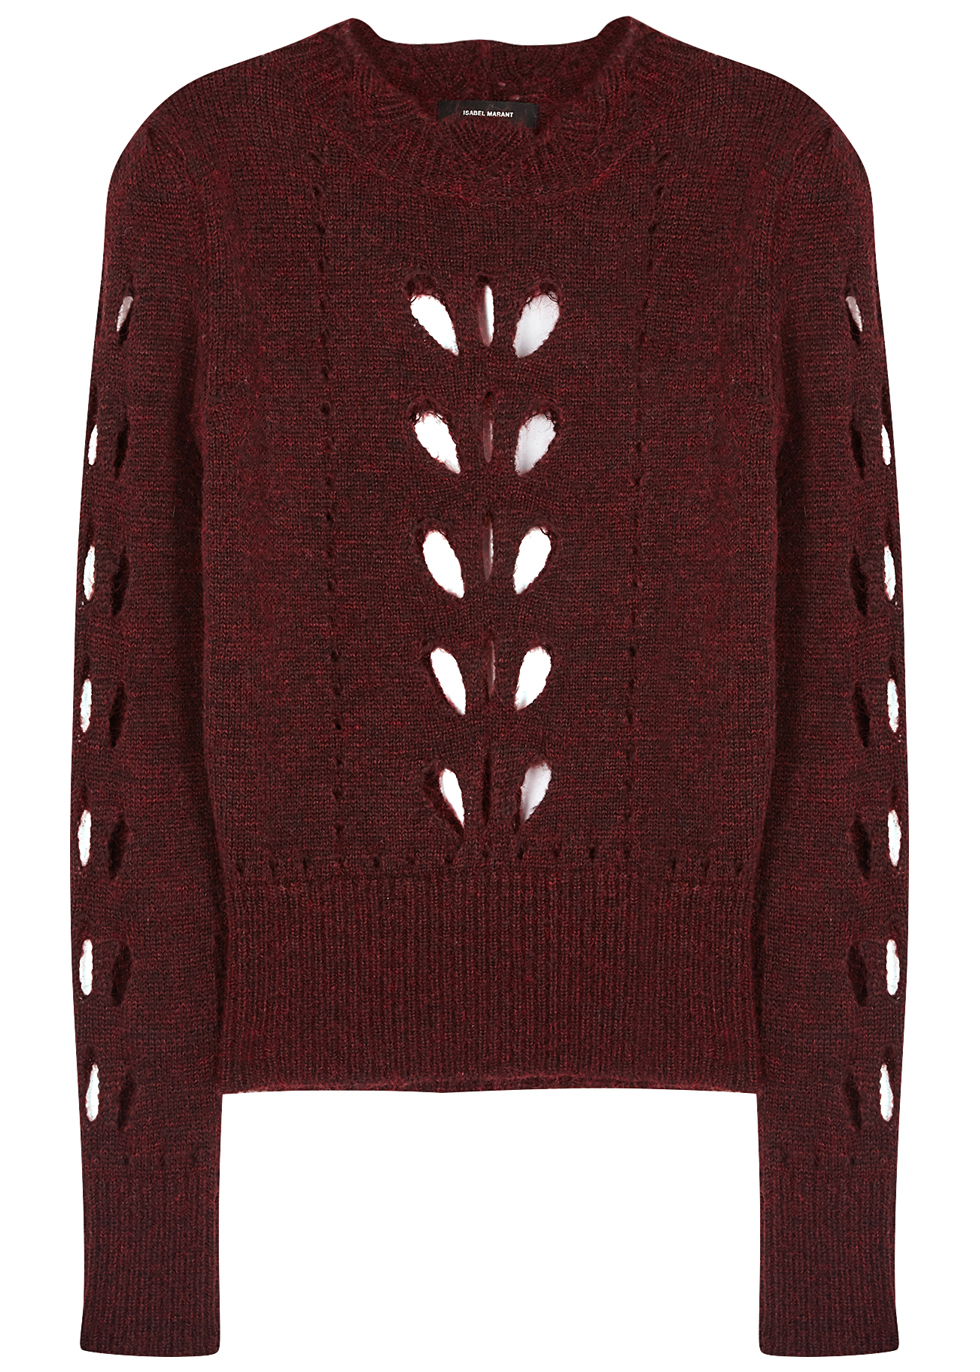 Ilia Burgundy Cut Out Jumper - pattern: plain; style: standard; predominant colour: burgundy; occasions: casual; length: standard; fibres: acrylic - mix; fit: slim fit; neckline: crew; sleeve length: long sleeve; sleeve style: standard; texture group: knits/crochet; pattern type: knitted - other; season: a/w 2016